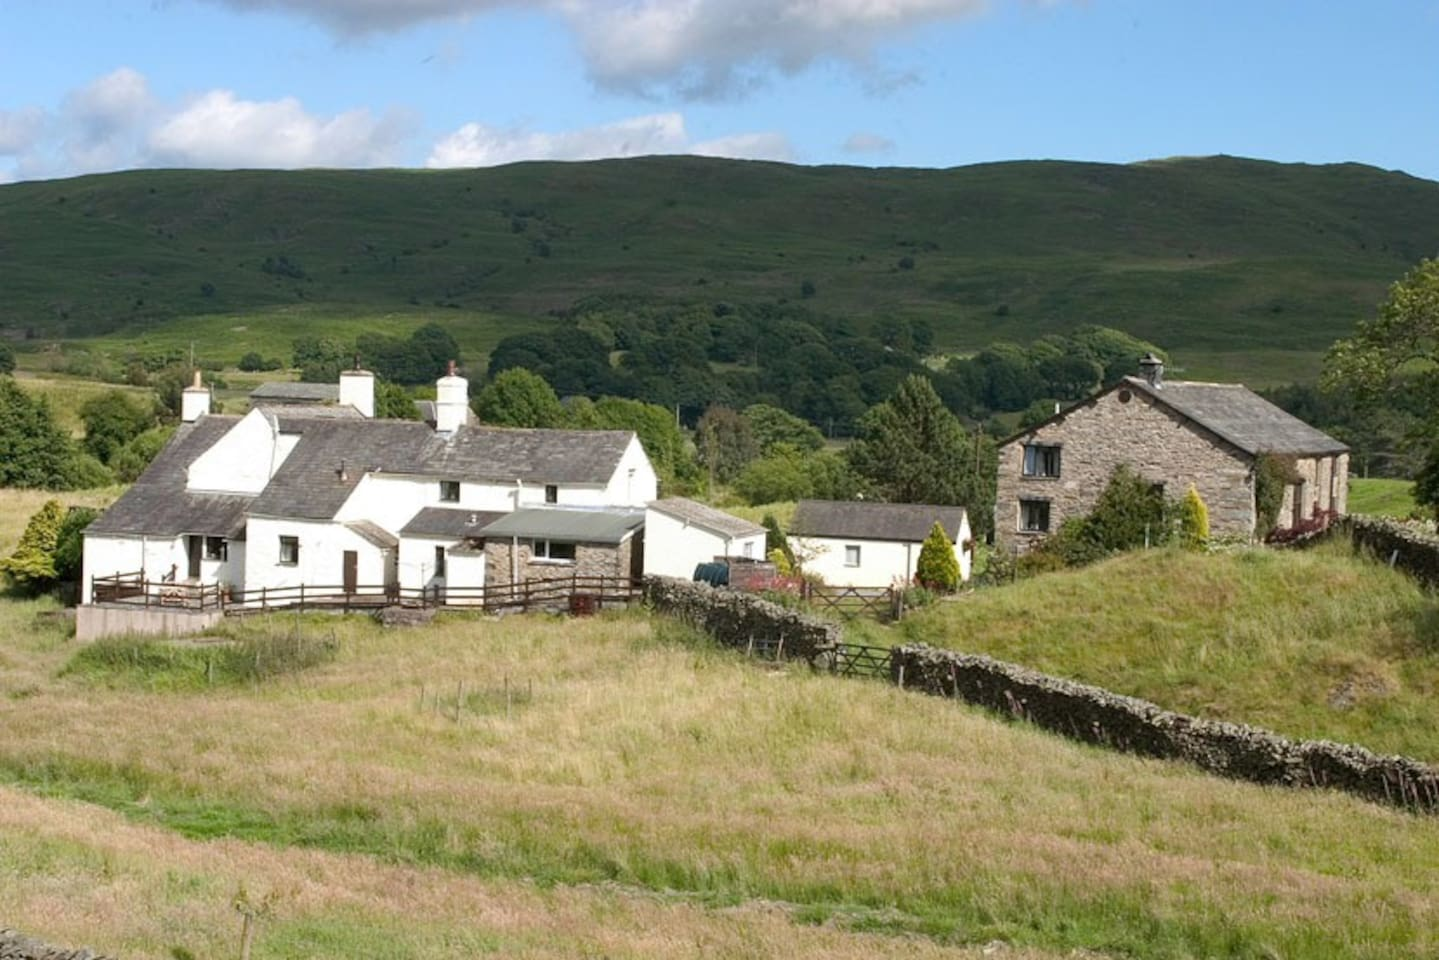 Ringhouse Cottages